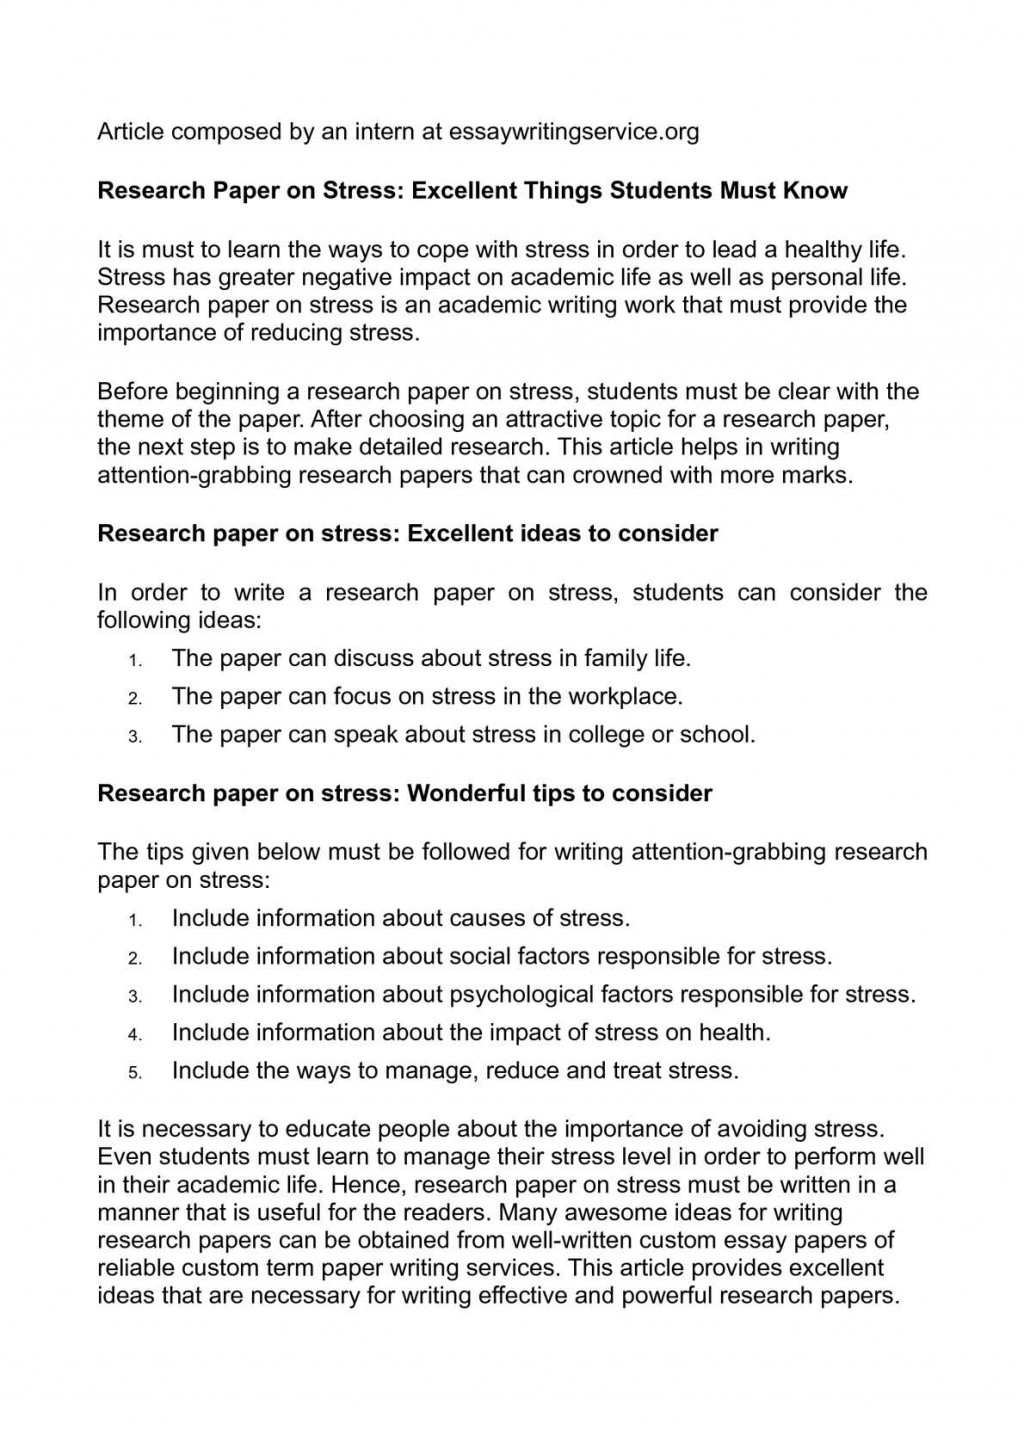 001 Research Paper Psychology Topics Stress Beautiful Large